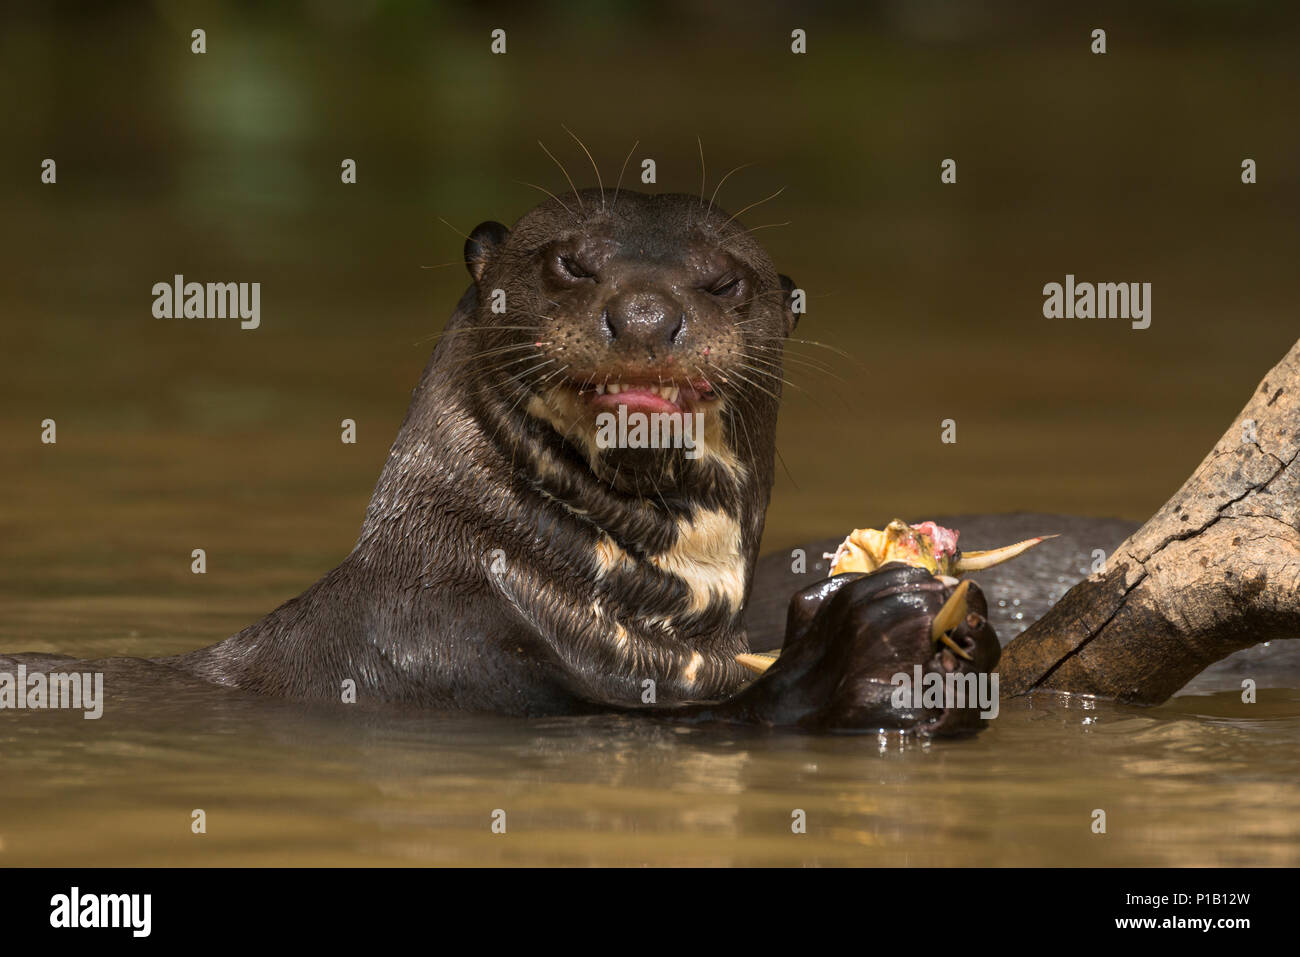 A Giant Otter eating a Mandi Catfish from the Pantanal of Brazil - Stock Image